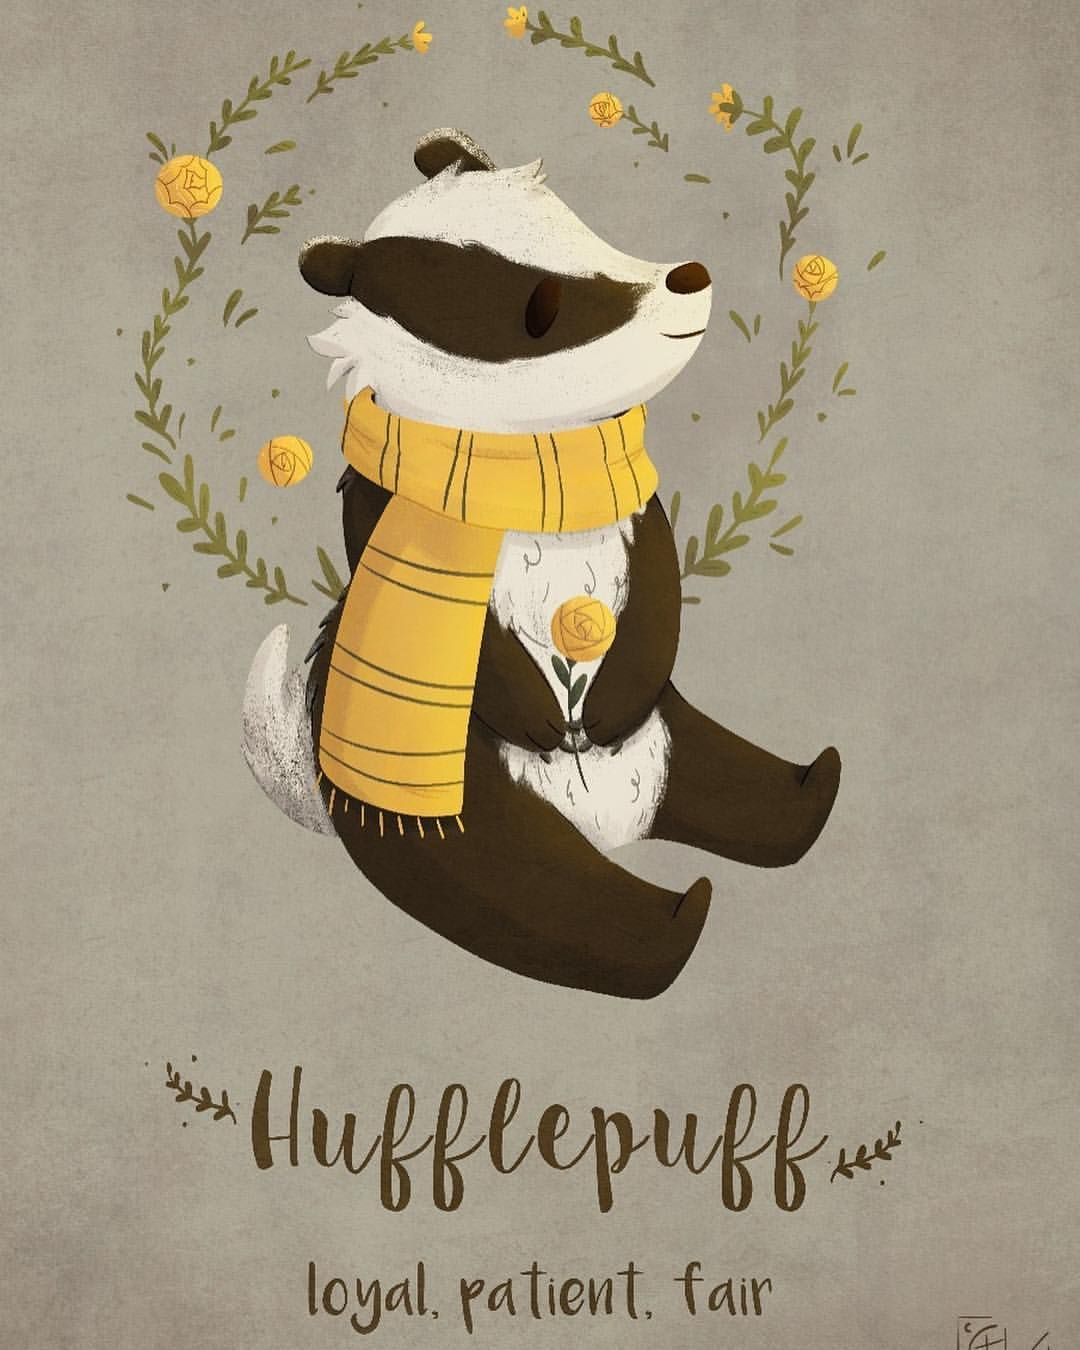 Hufflepuff! Cute and dangerous